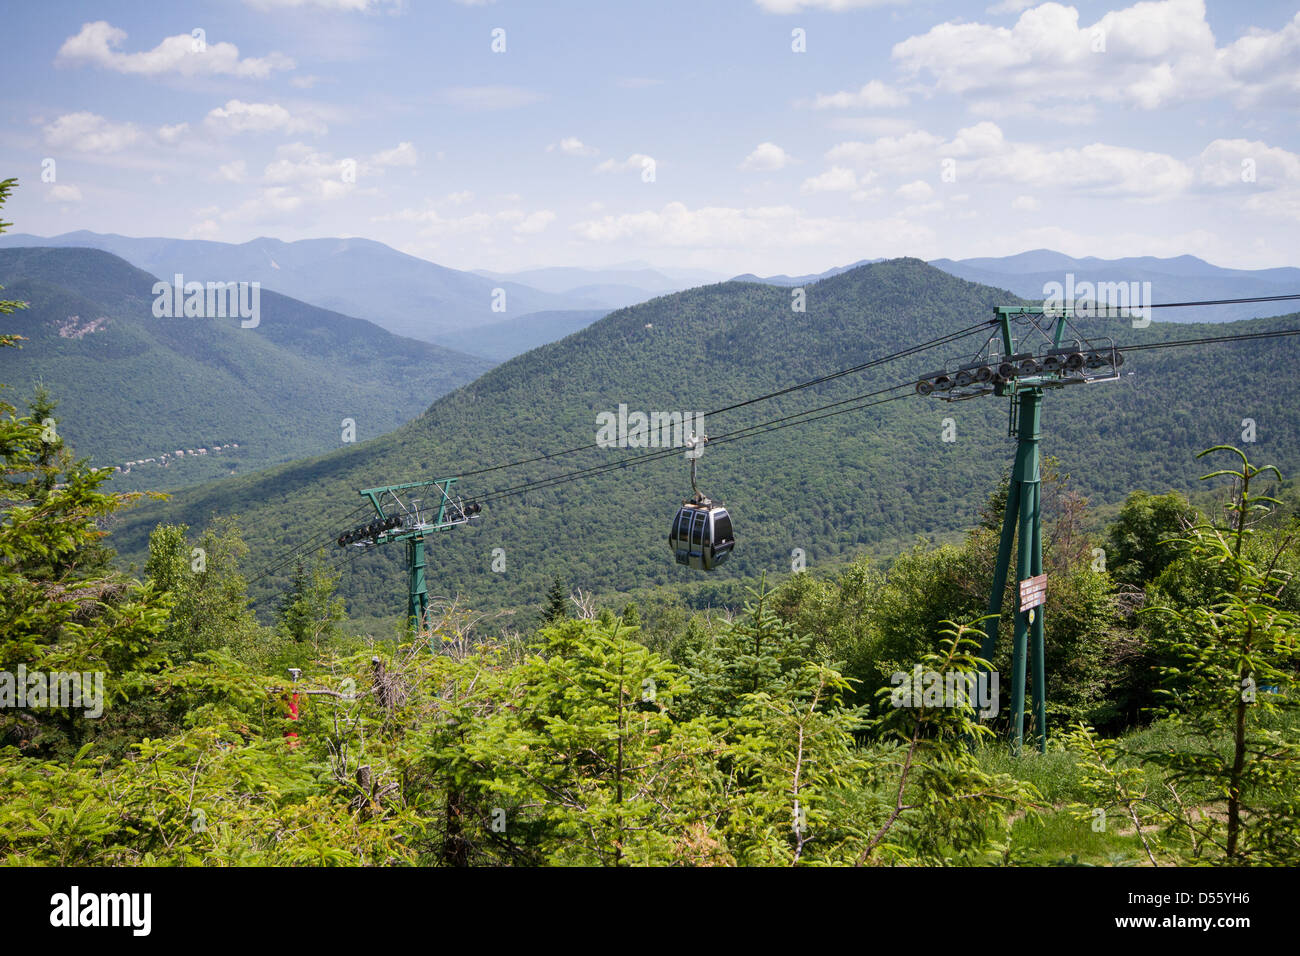 gondola skyride at loon mountain resort, nh - with mountain